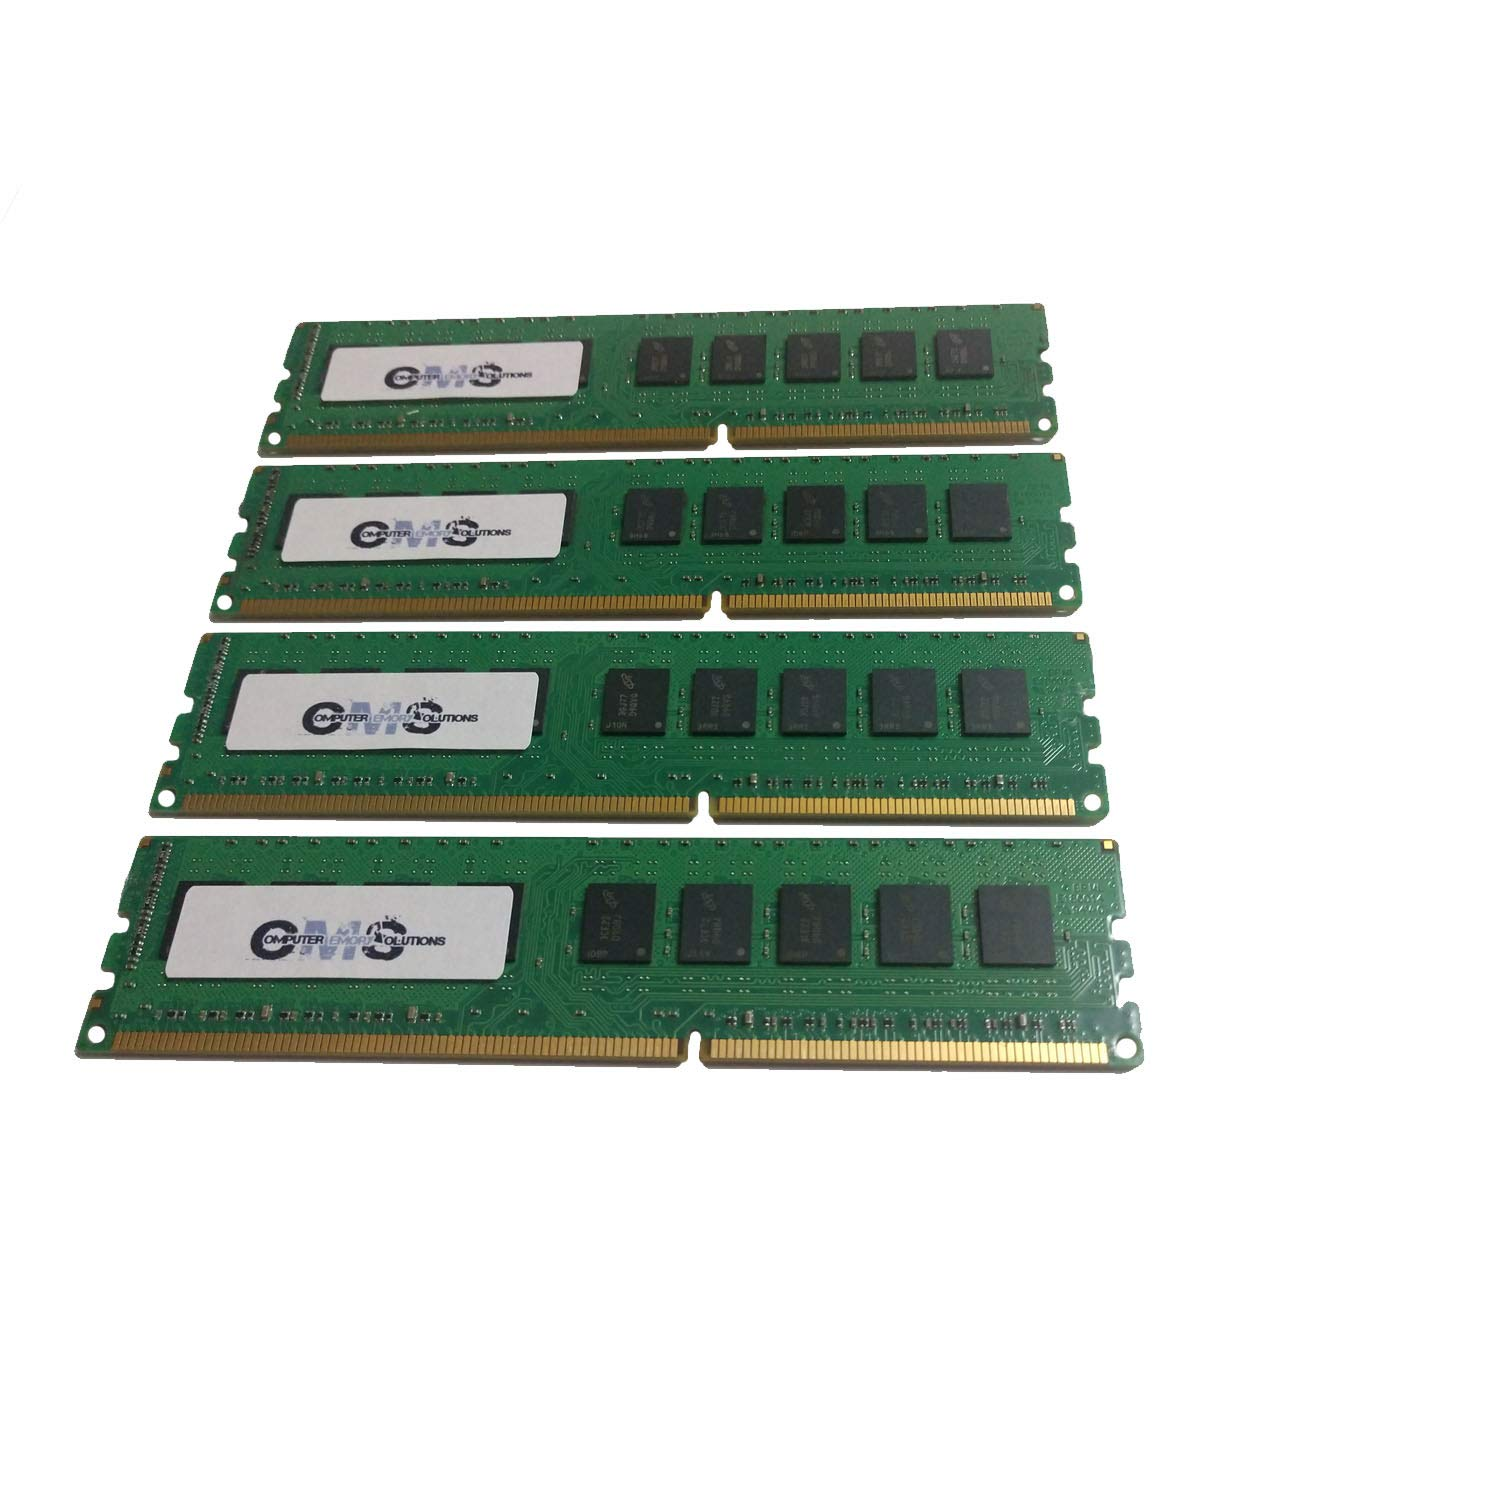 8GB 16GB 32GB PC3-12800 DDR3 1600MHz 240pin Memory For HP EliteDesk 800 G1 Tower